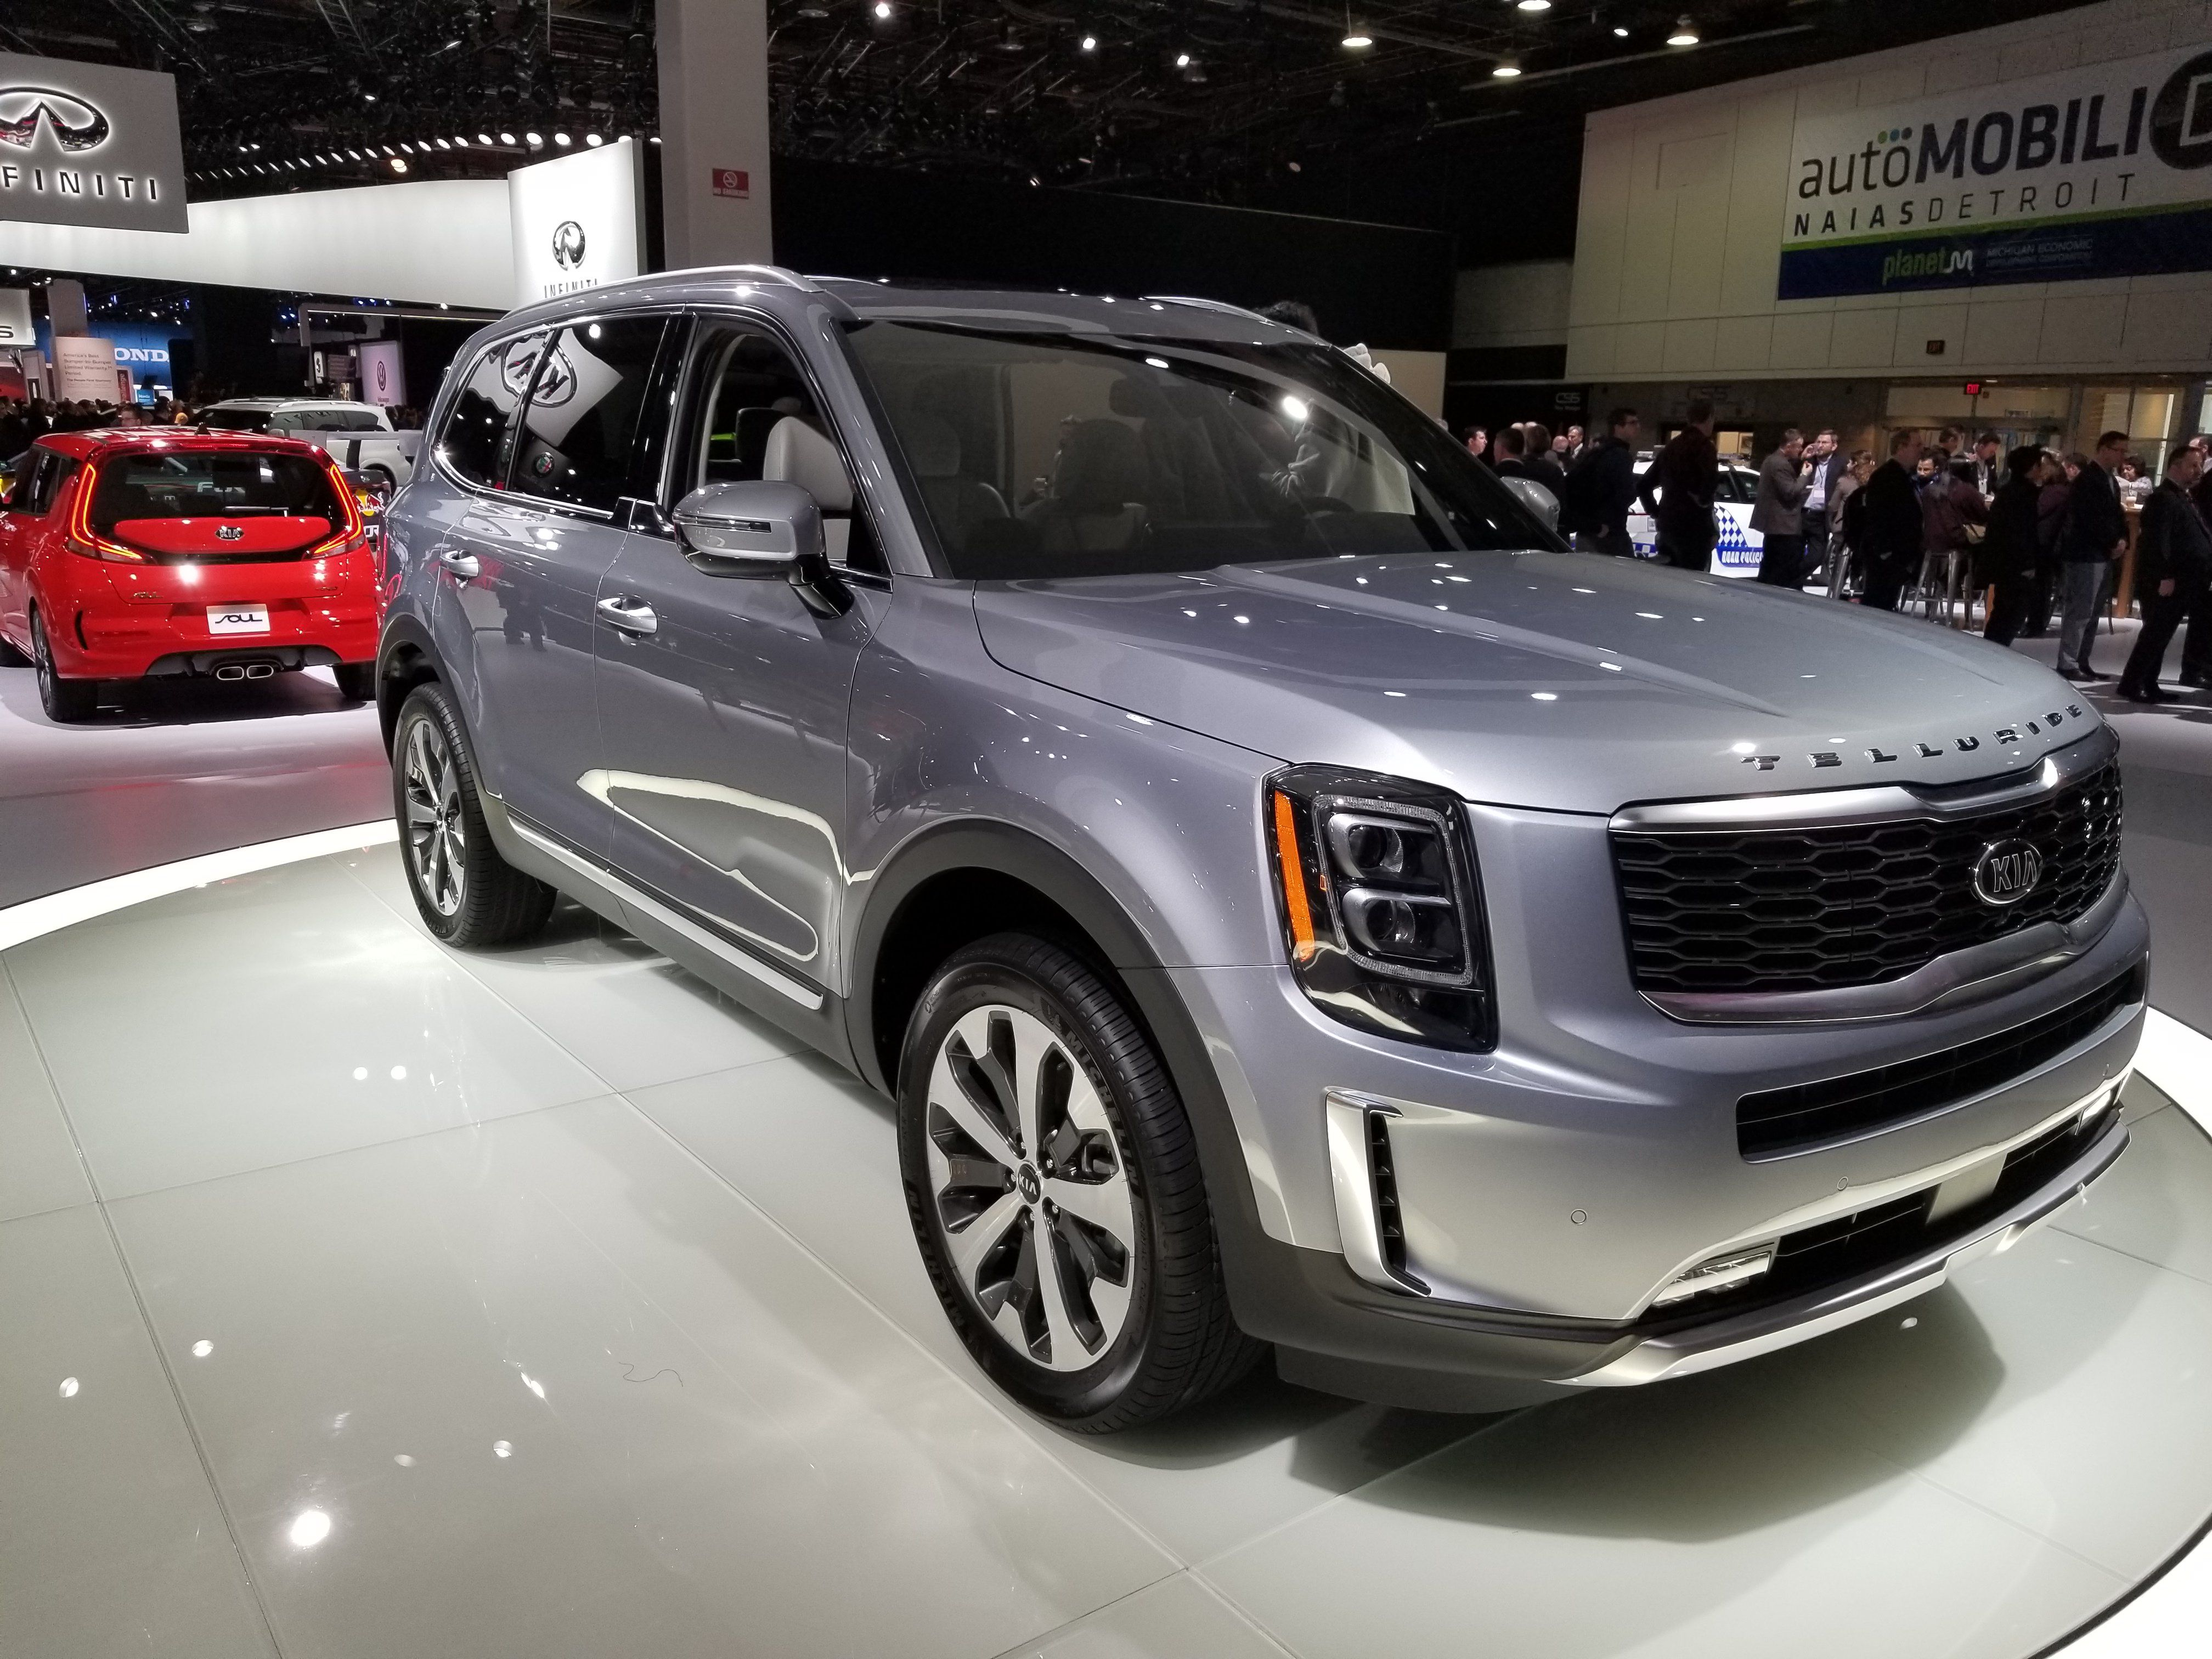 Kia Drops Pricing Info On 2020 Telluride Suv Looks Like A Steal Against The Competition Top Speed Suv Cars Best New Cars Suv